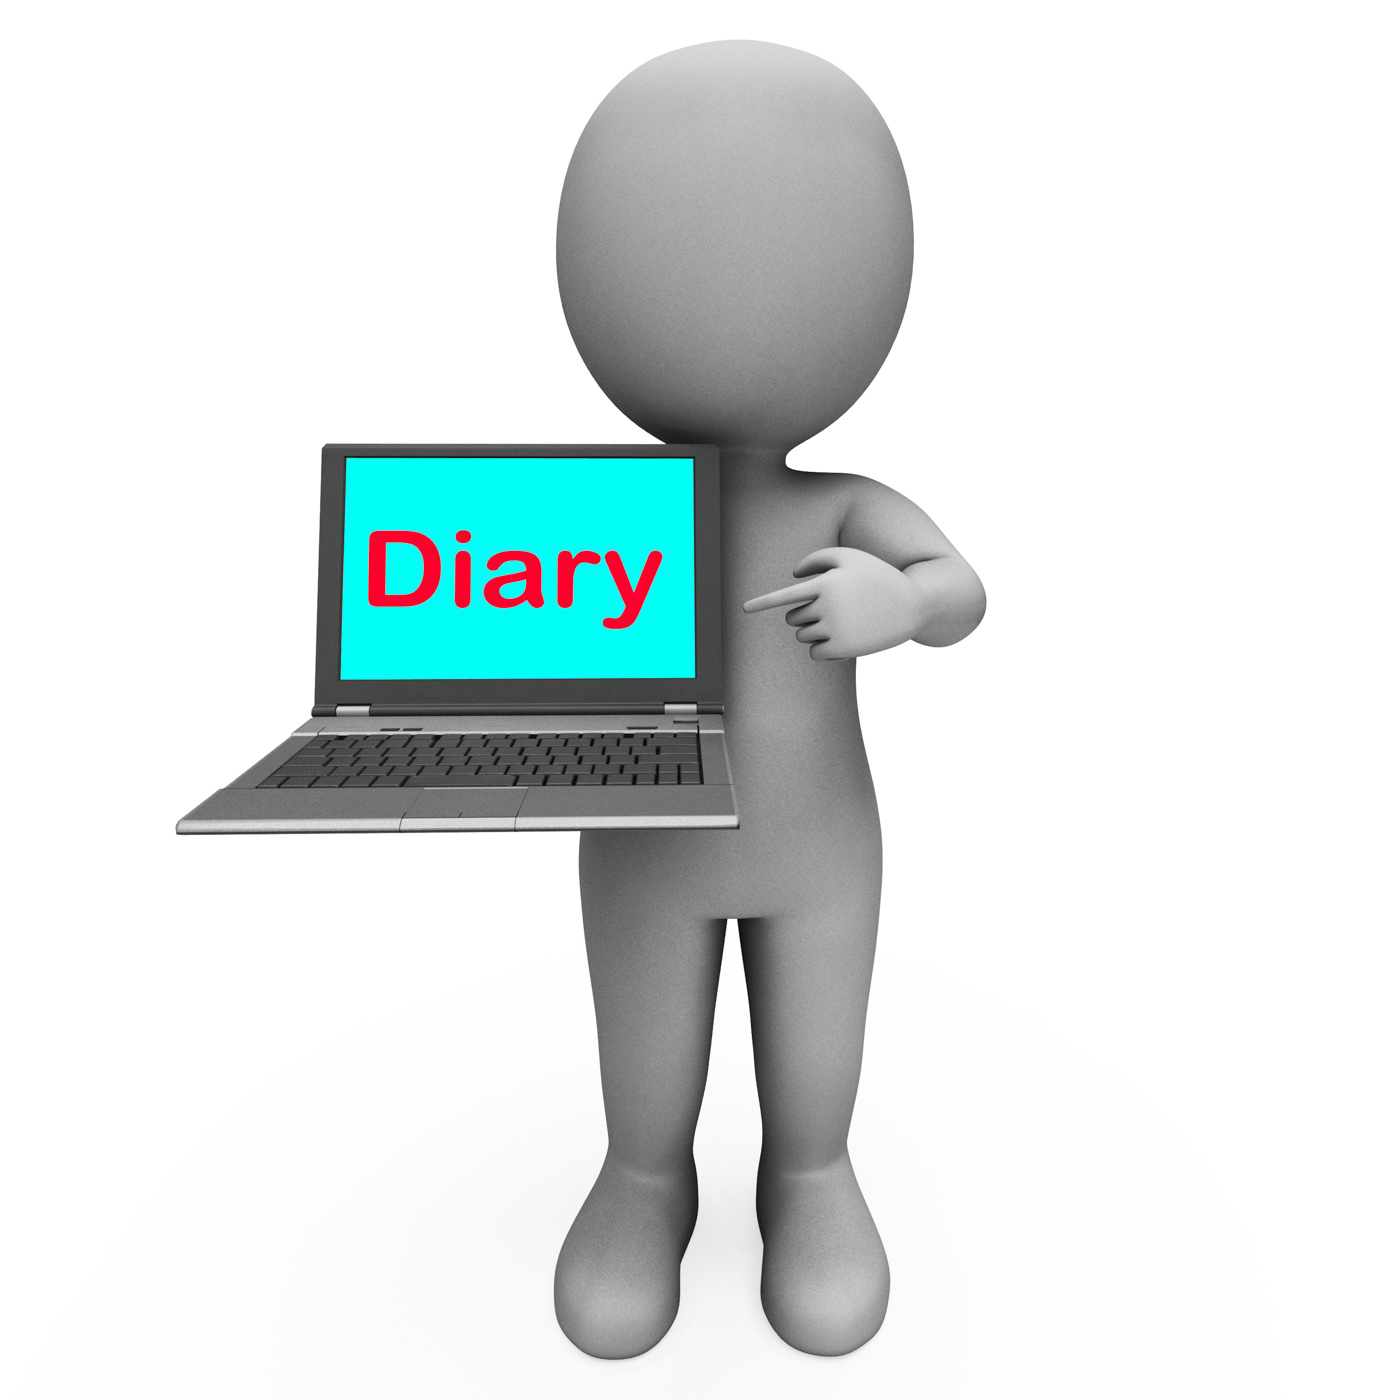 Diary Laptop Character Shows Online Reminder Or Scheduler, 3dcharacter, Appointment, Diary, Diarybook, HQ Photo